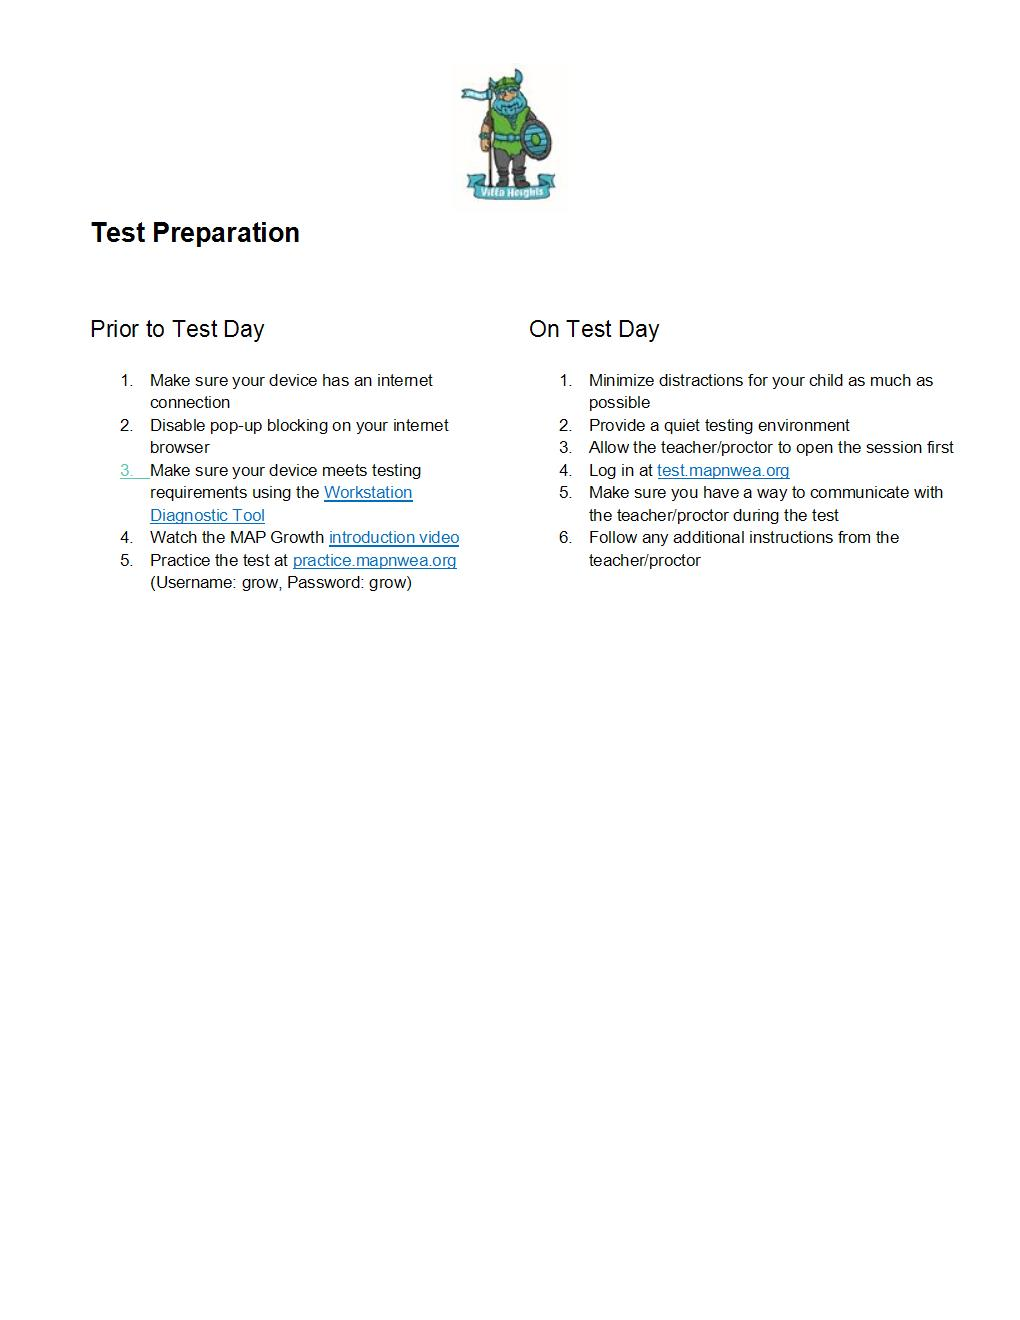 Grades_2-5_Family_Remote_Testing_Guidance_for_schools_English.docx[1]-2[1].jpg